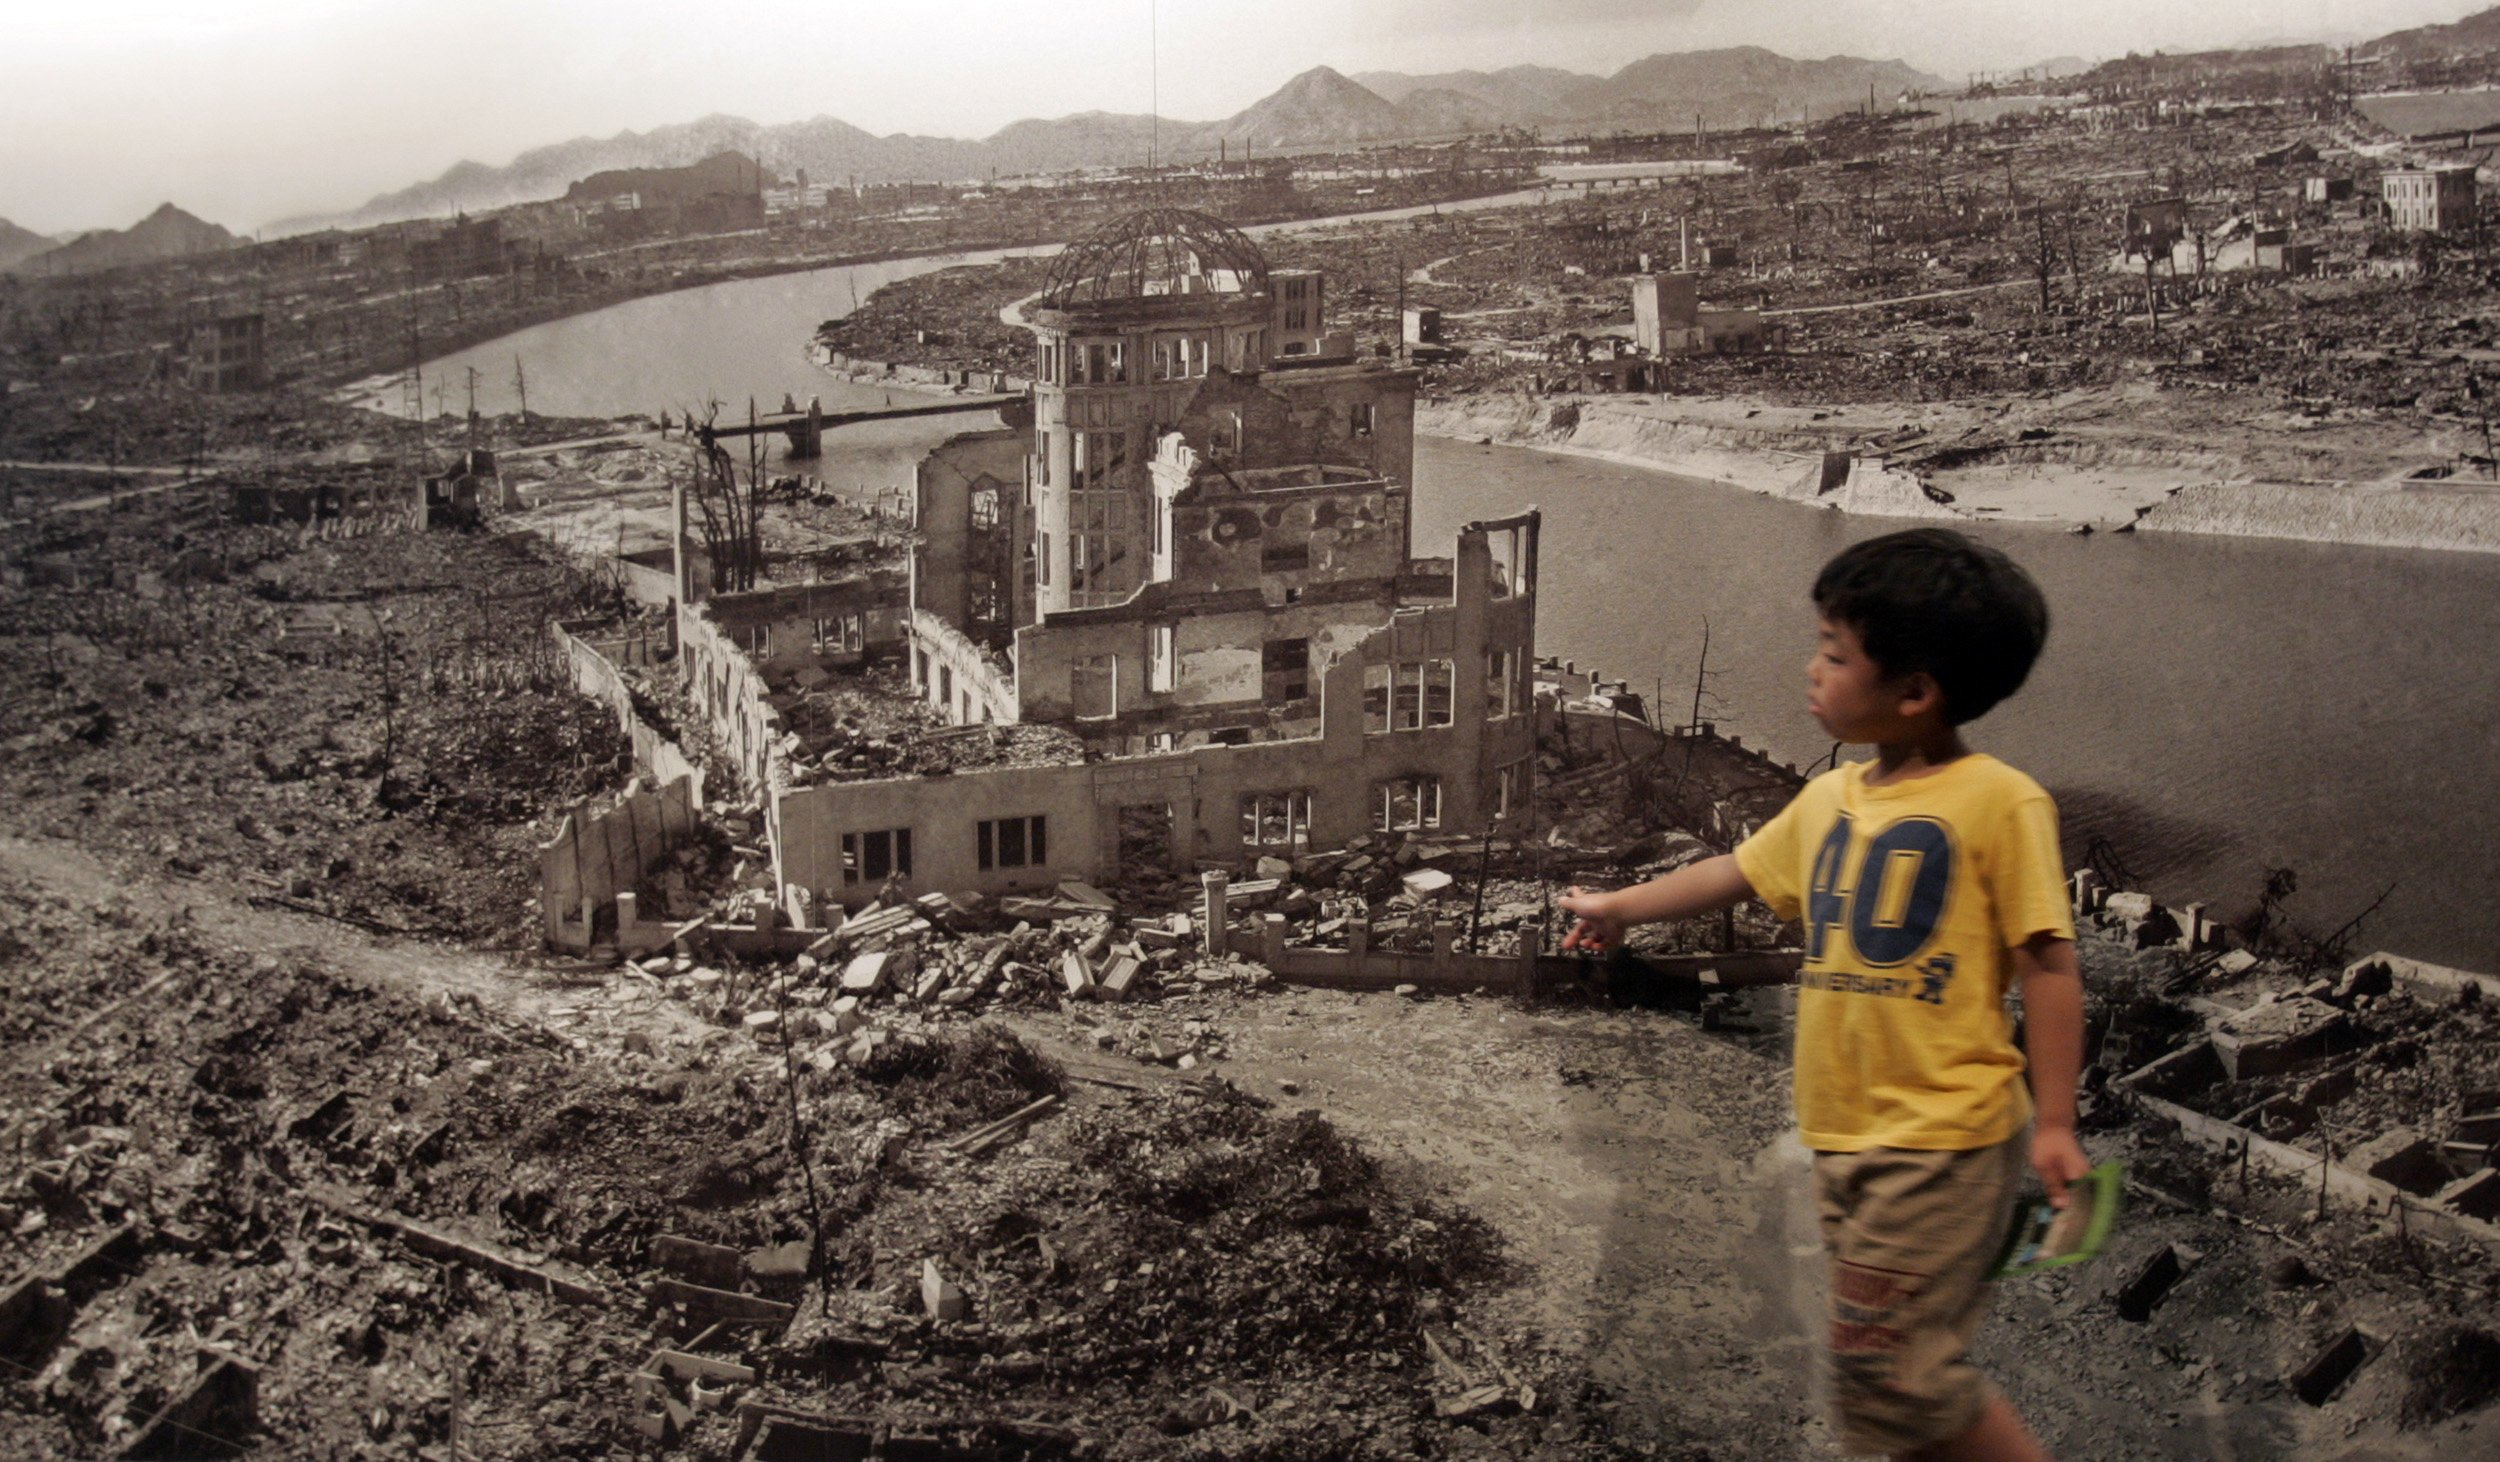 The After-Effects of The Atomic Bombs on Hiroshima & Nagasaki